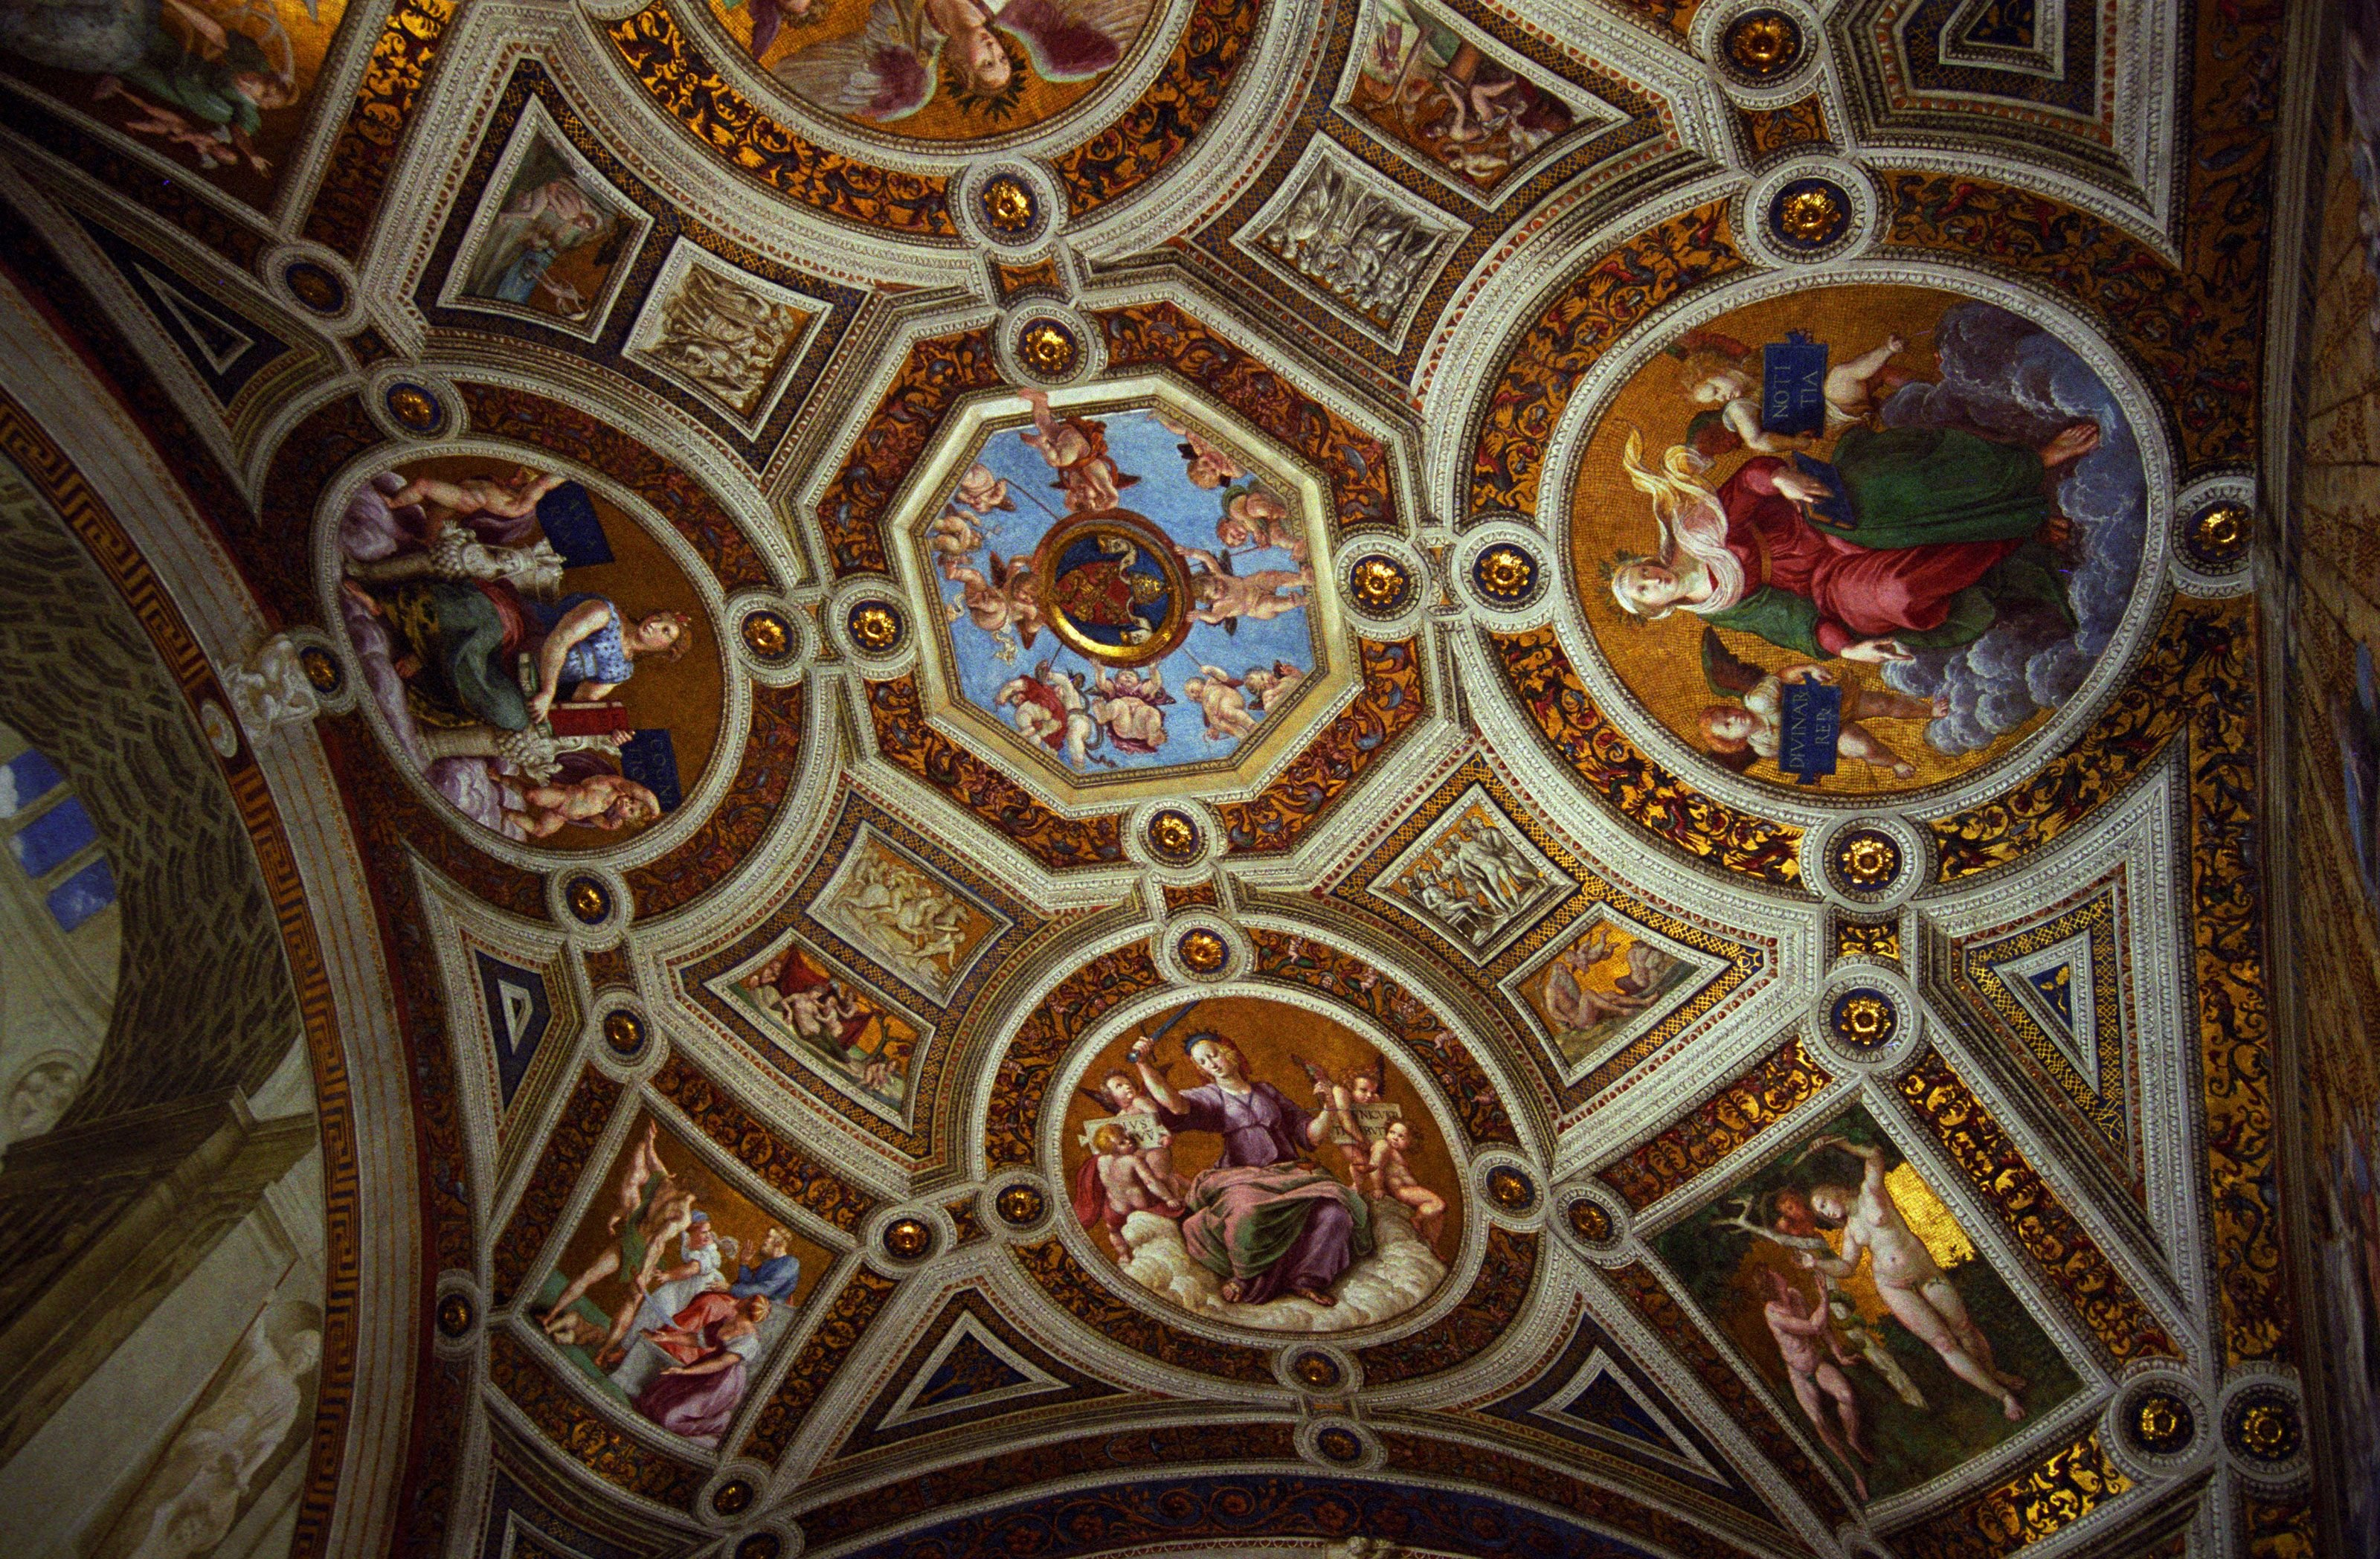 Ceiling of the Sistine Chapel : Travel Wallpapers and Stock Photo